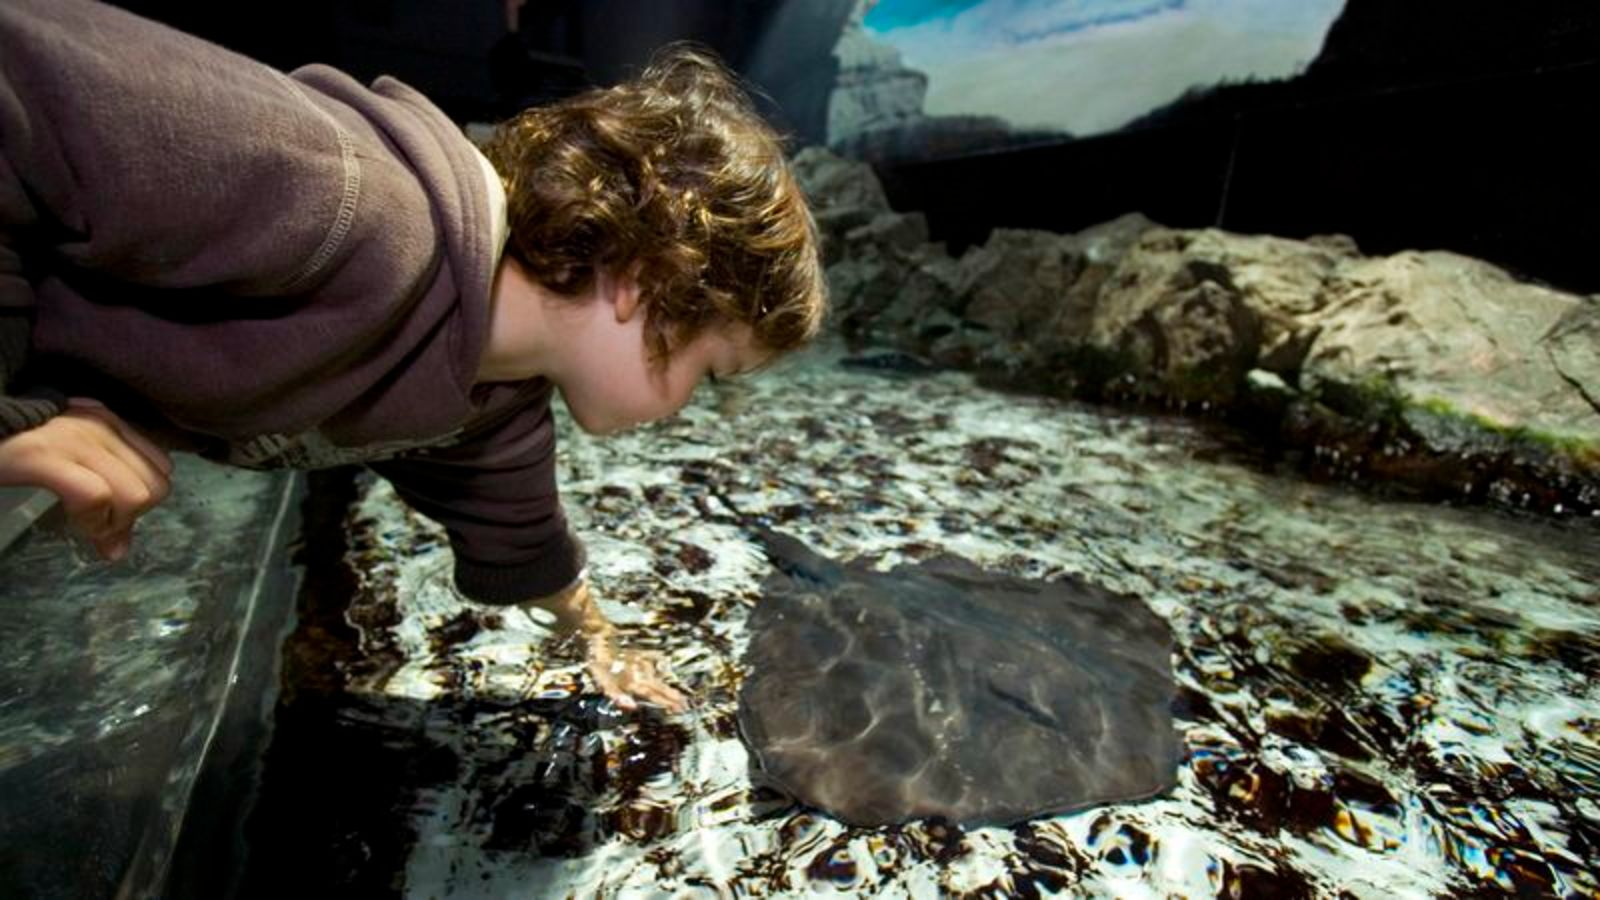 Stingray Loves When Aquarium Visitors Squeal And Recoil After Touching It https://t.co/jwz1zCHsYX https://t.co/aGyxLbClmp